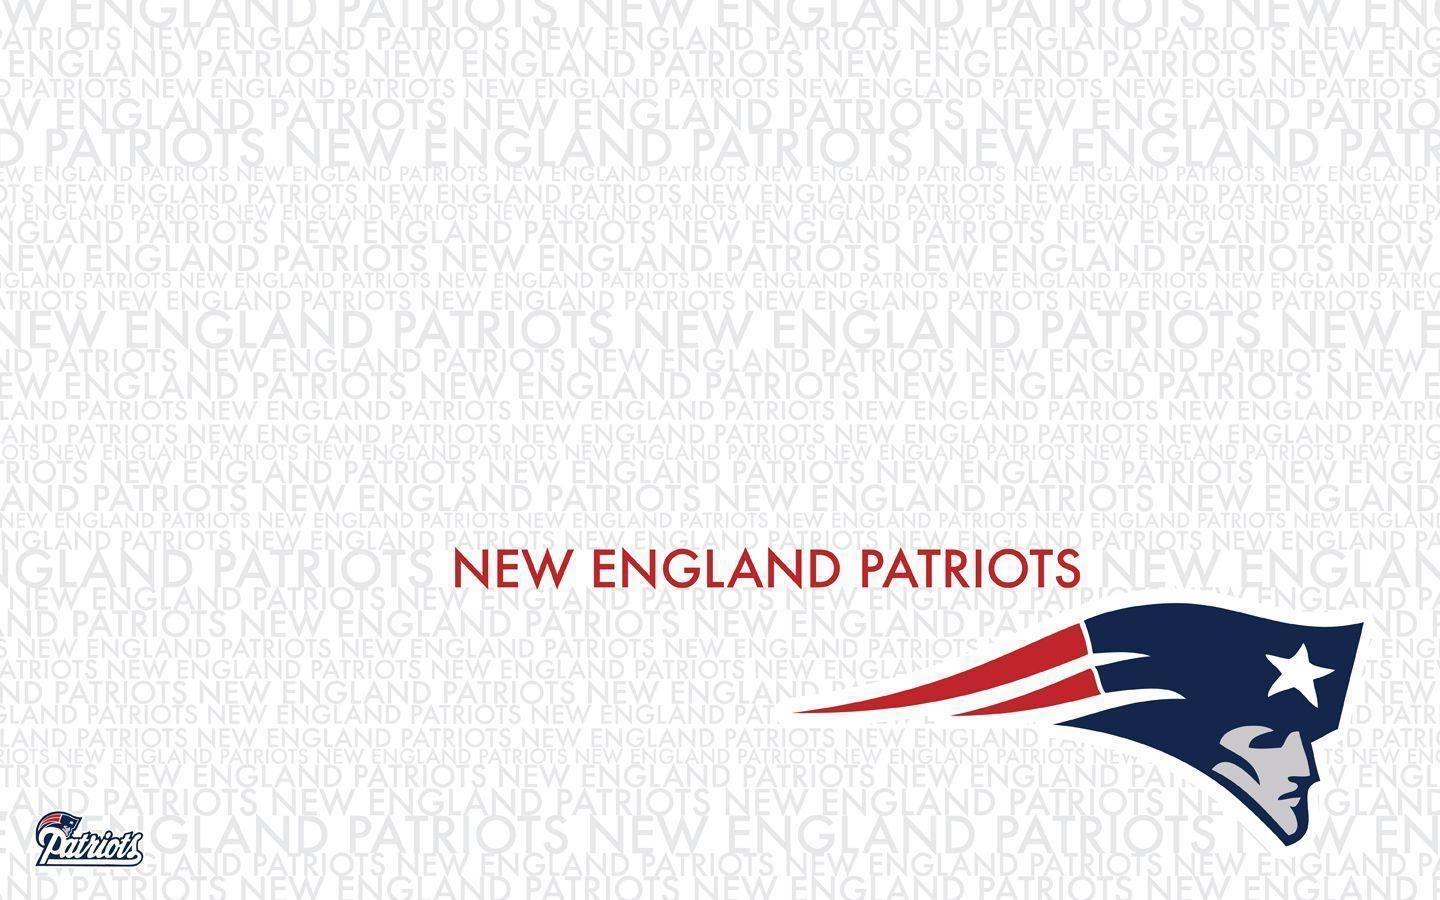 New England Patriot Wallpapers - Album on Imgur